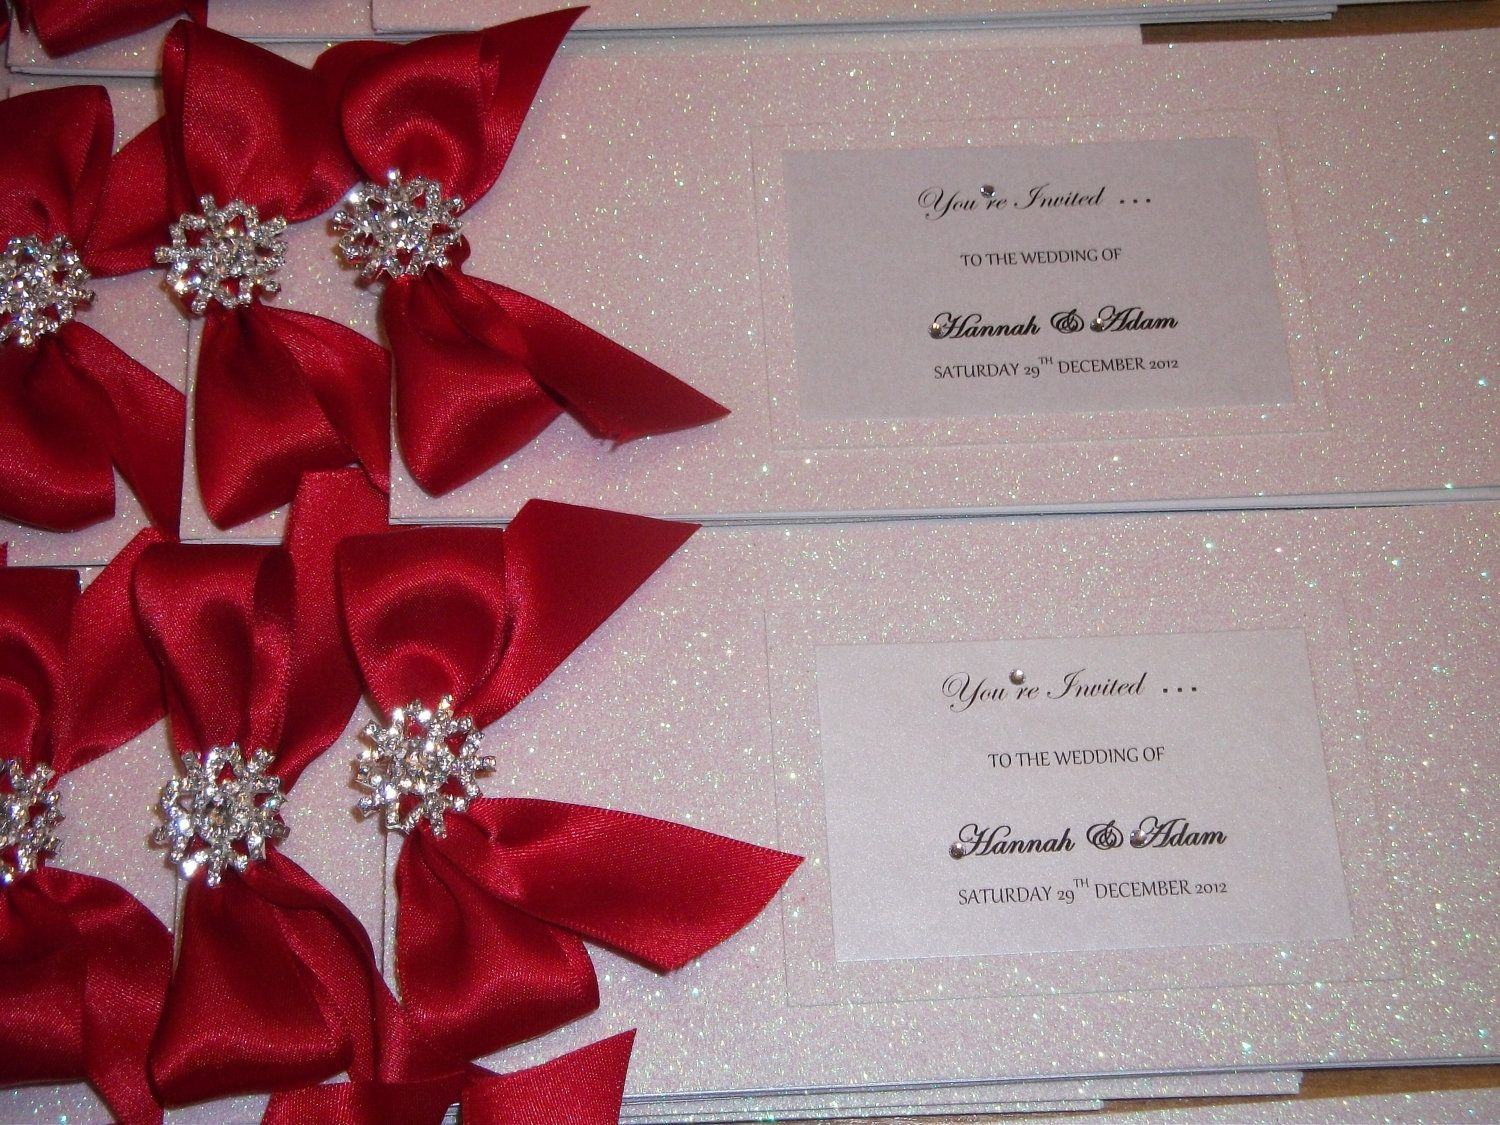 Handmade Couture The Winter Crystal cheque book wedding invitation ...